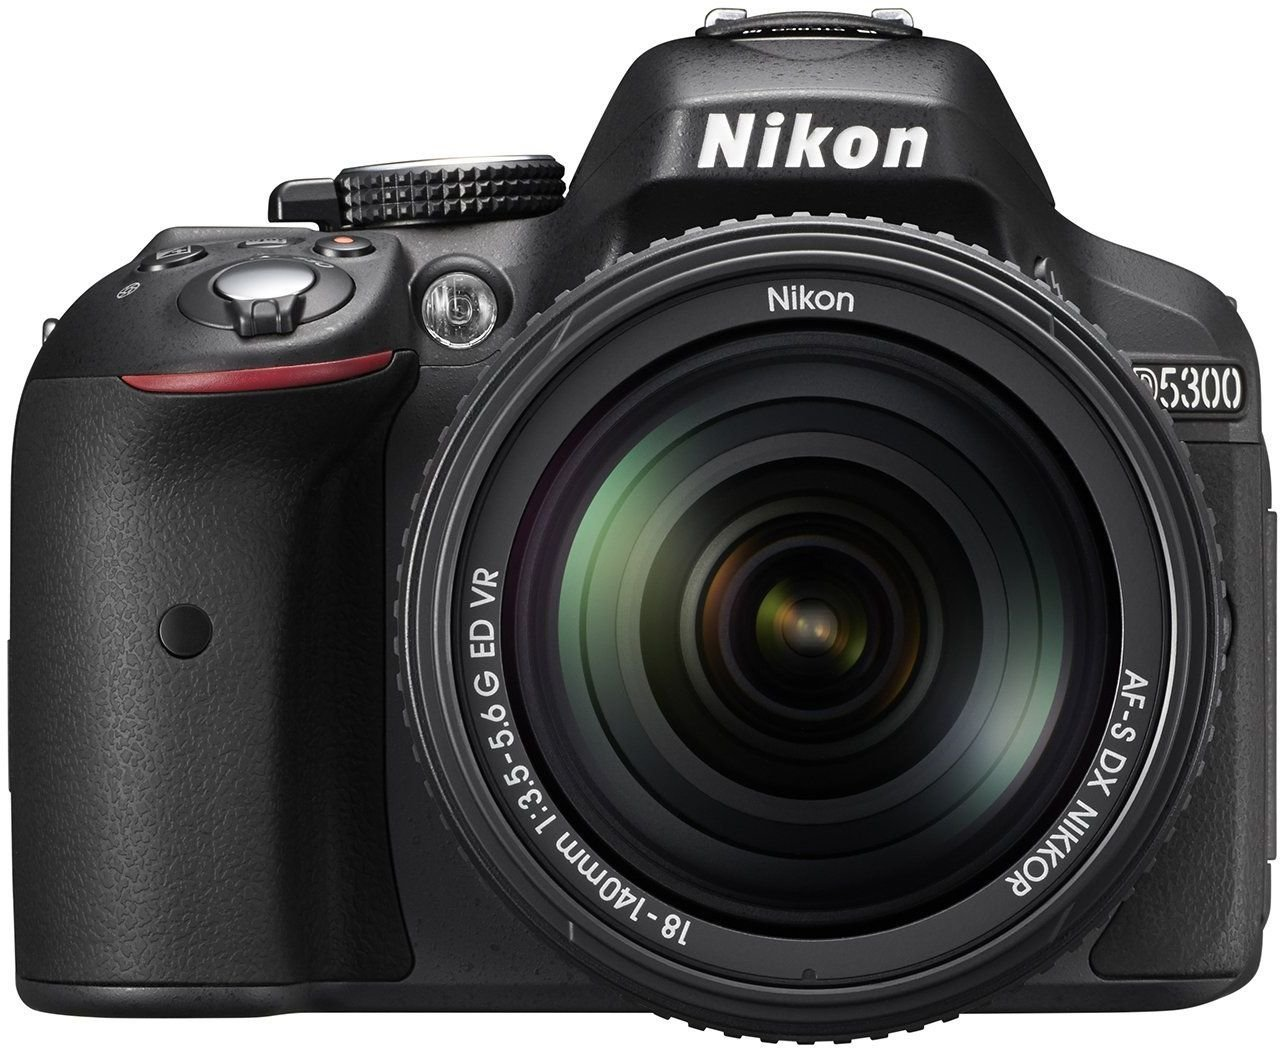 Nikon D5300 24.2MP Digital SLR Camera (Black) with 18-140mm